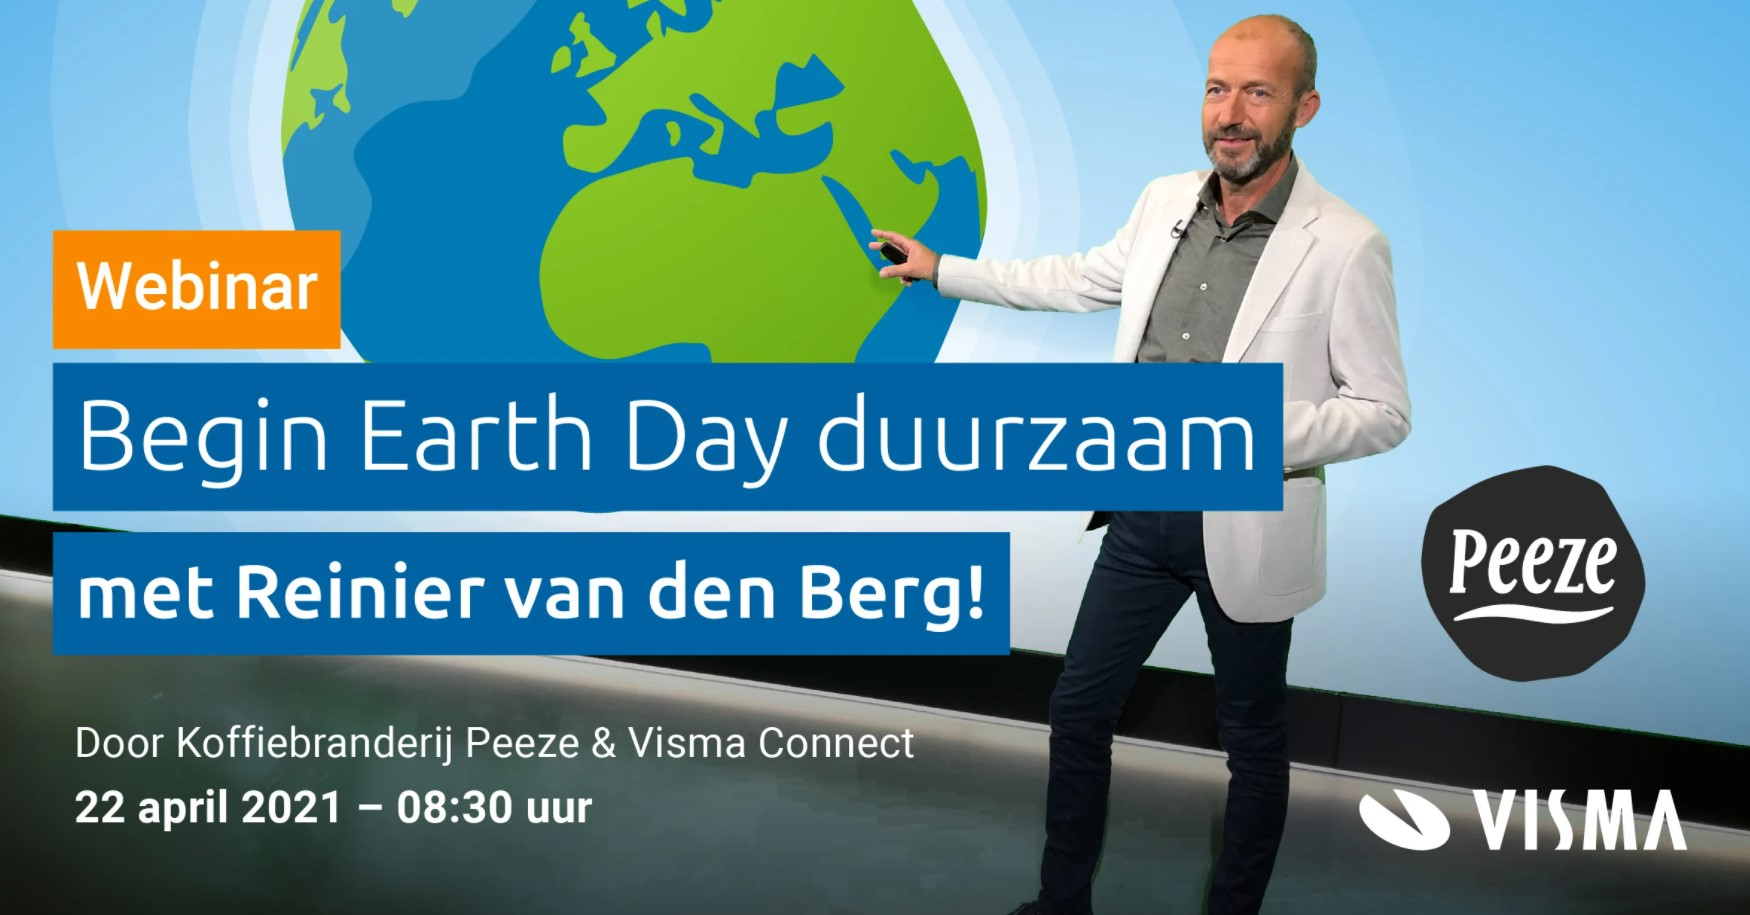 Begin Earth Day duurzaam met Reinier van den Berg!